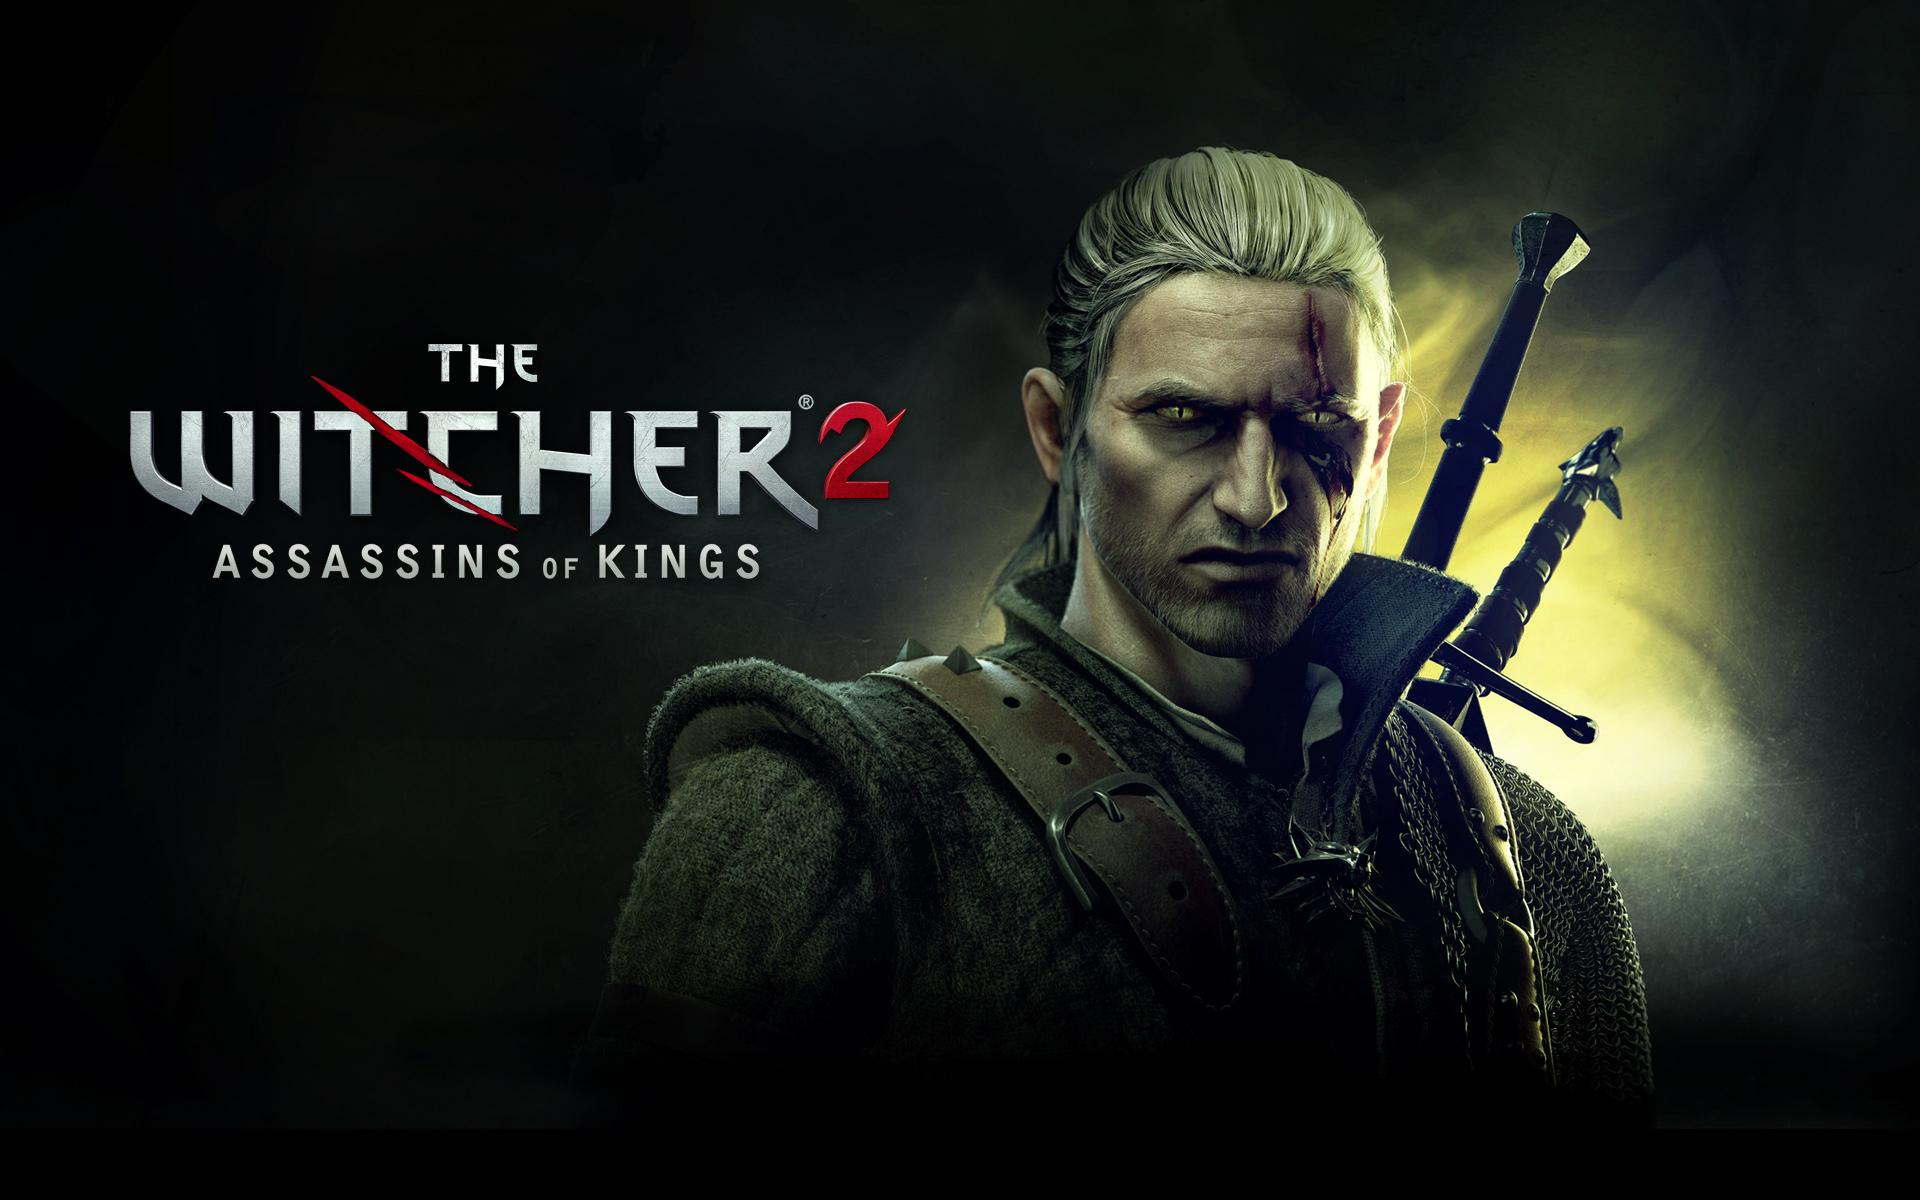 Обои The Witcher 2: Assassins of Kings 1920x1200